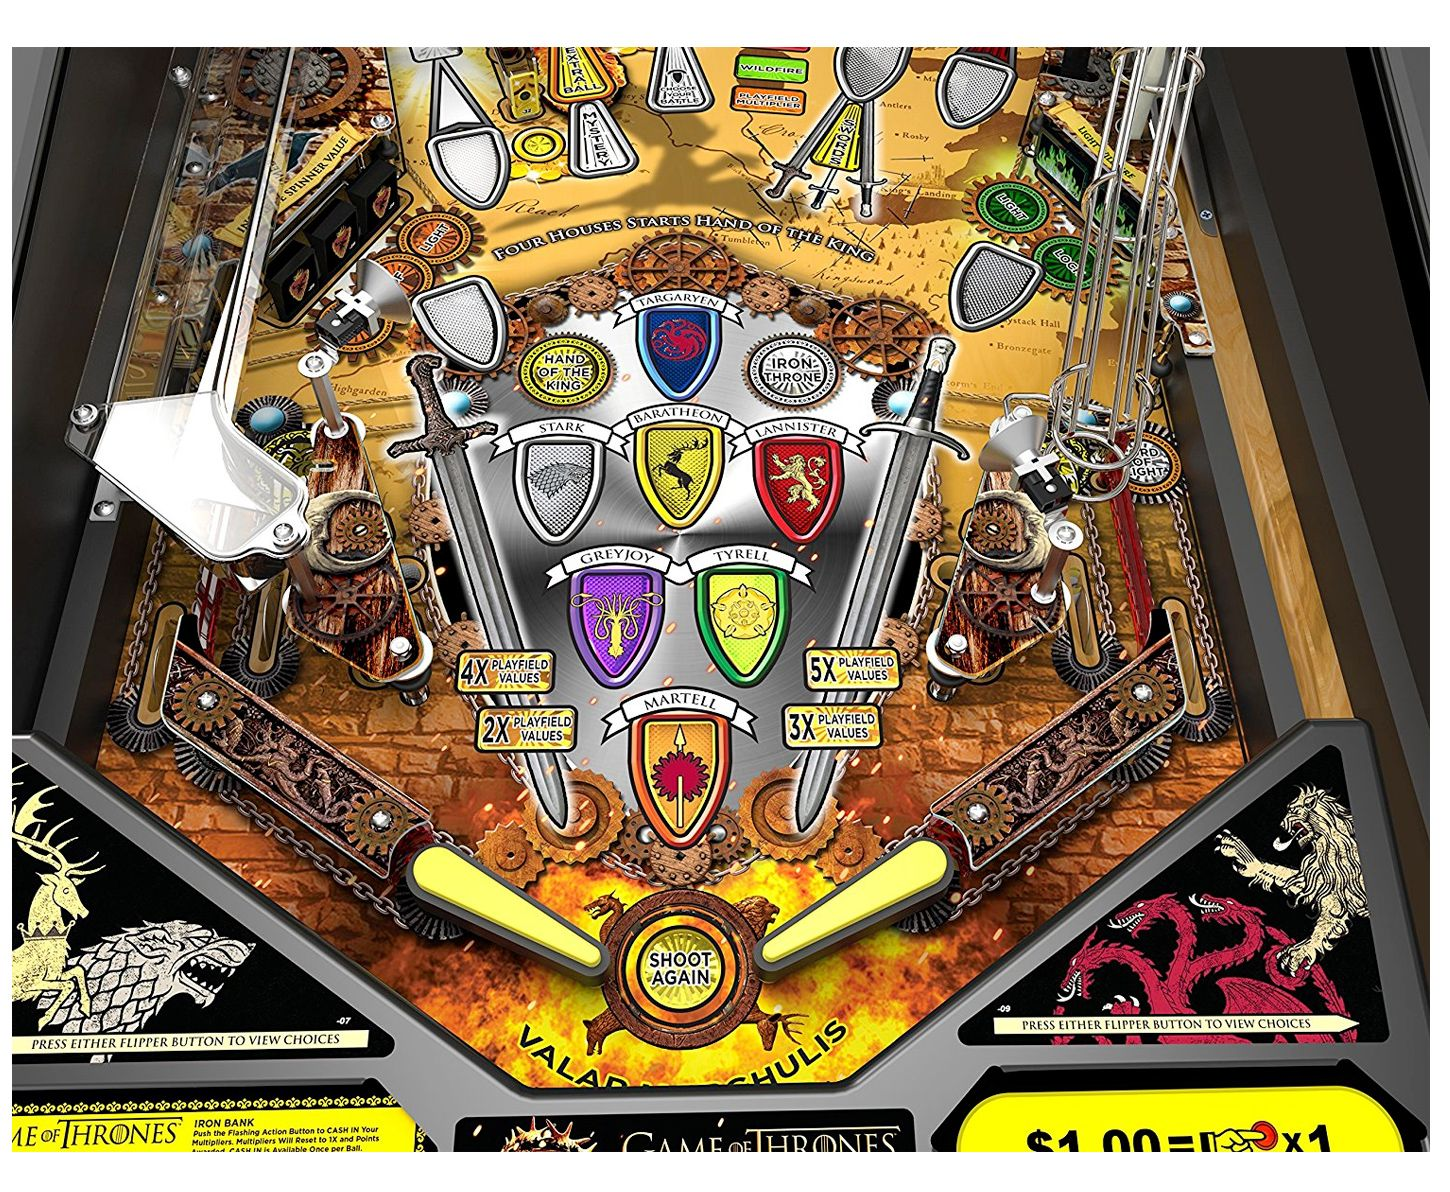 Game-of-Thrones-Pinball-Pro-Arcade-Pinball-Machine-09